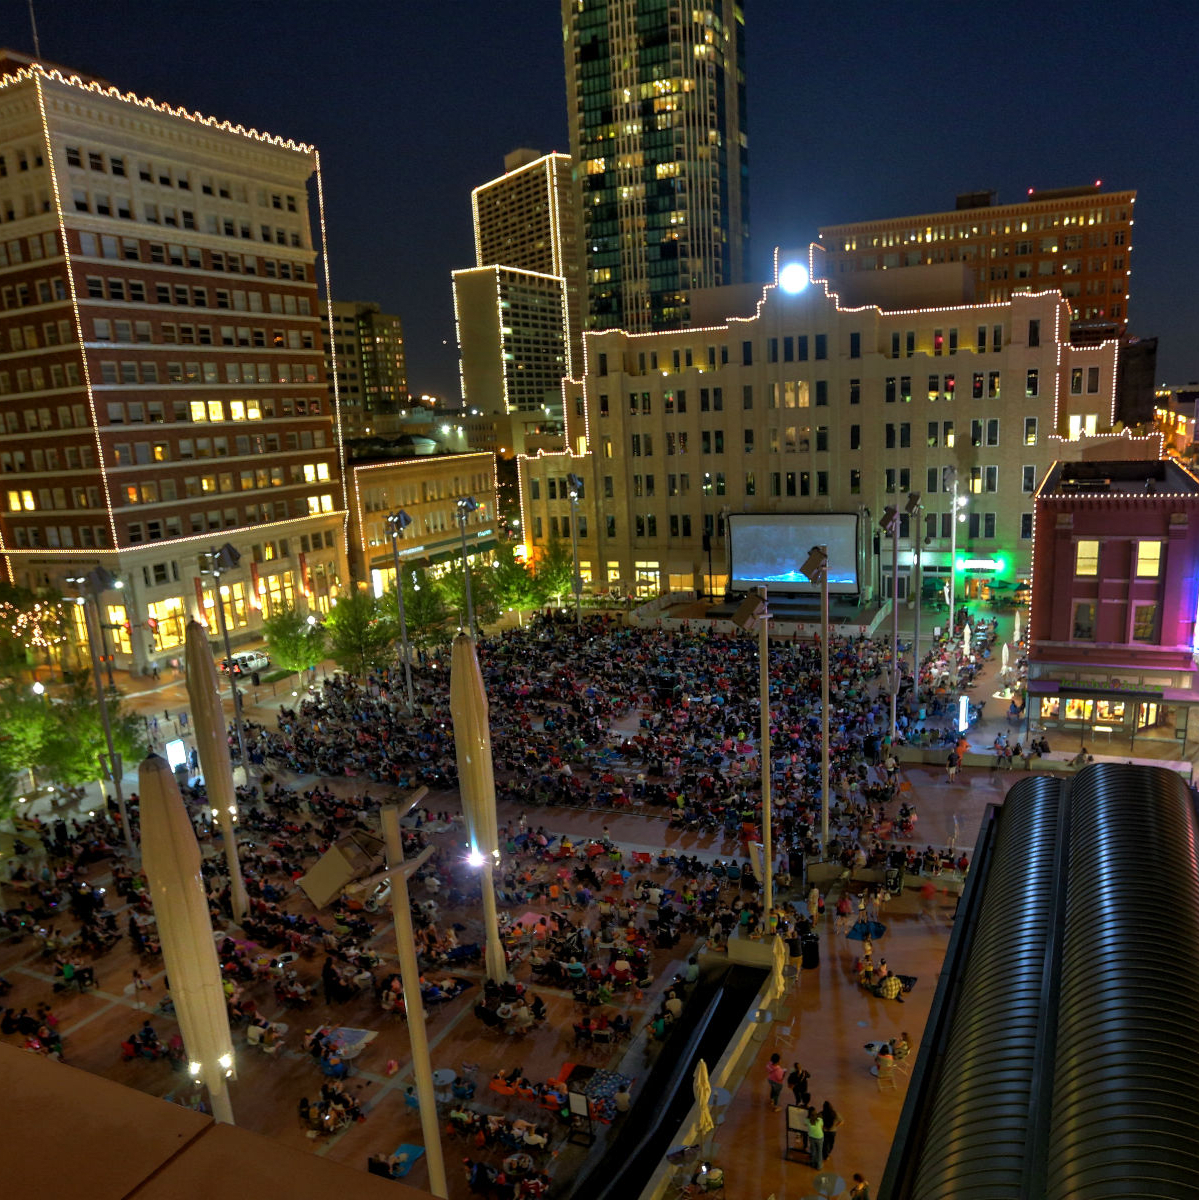 Movie night at Sundance Square Plaza